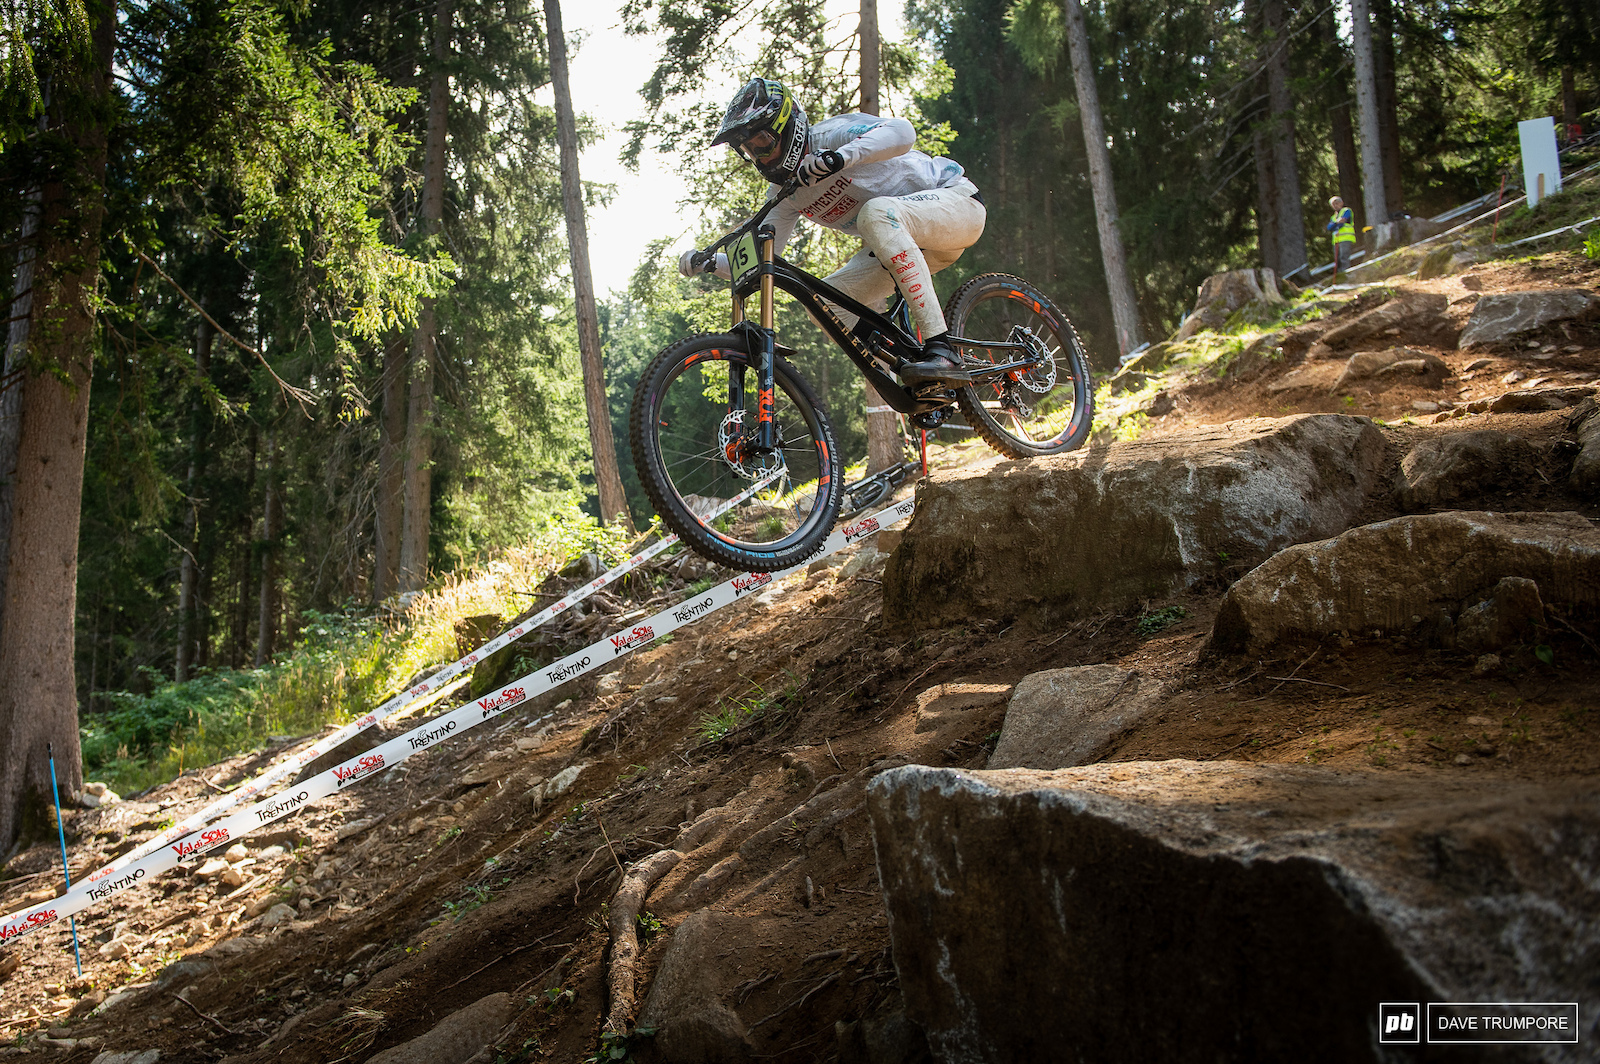 The new rock sections are holding up well and adding a new element to this classic track